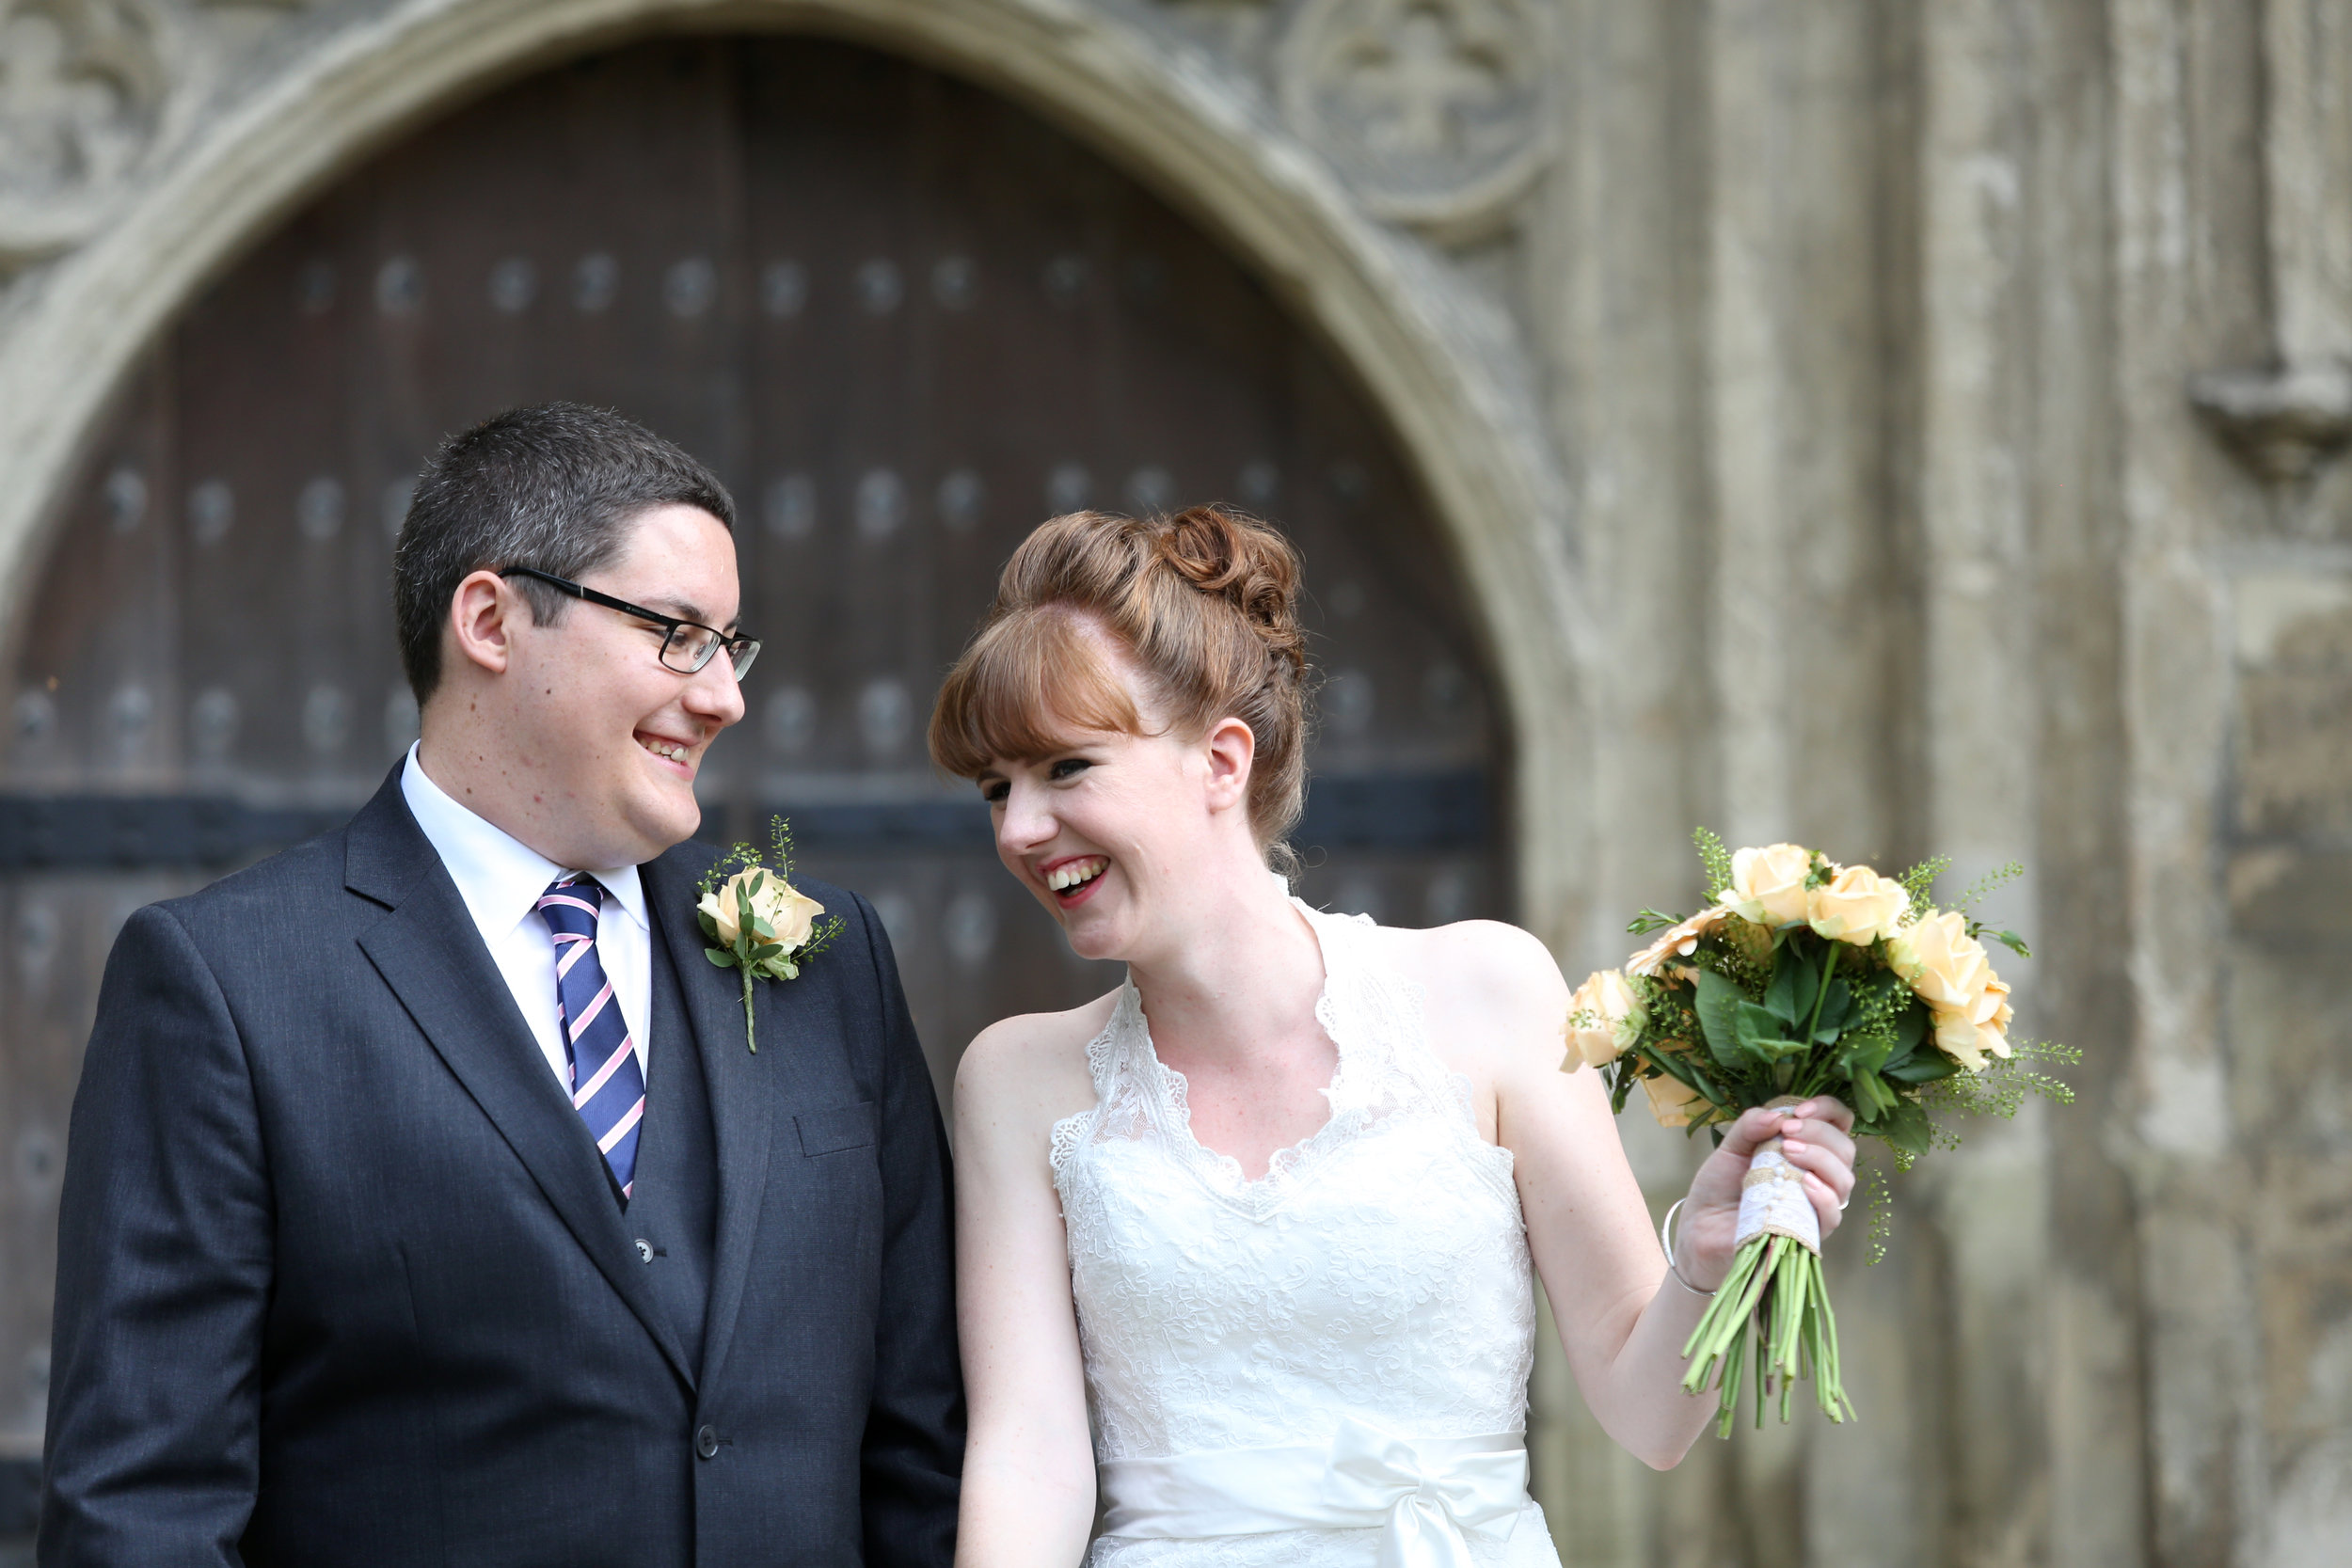 JELLYFISH WEDDING PHOTOGRAPHY THE PRIORY ST PETER CHURCH DUNSTABLE (42).jpg